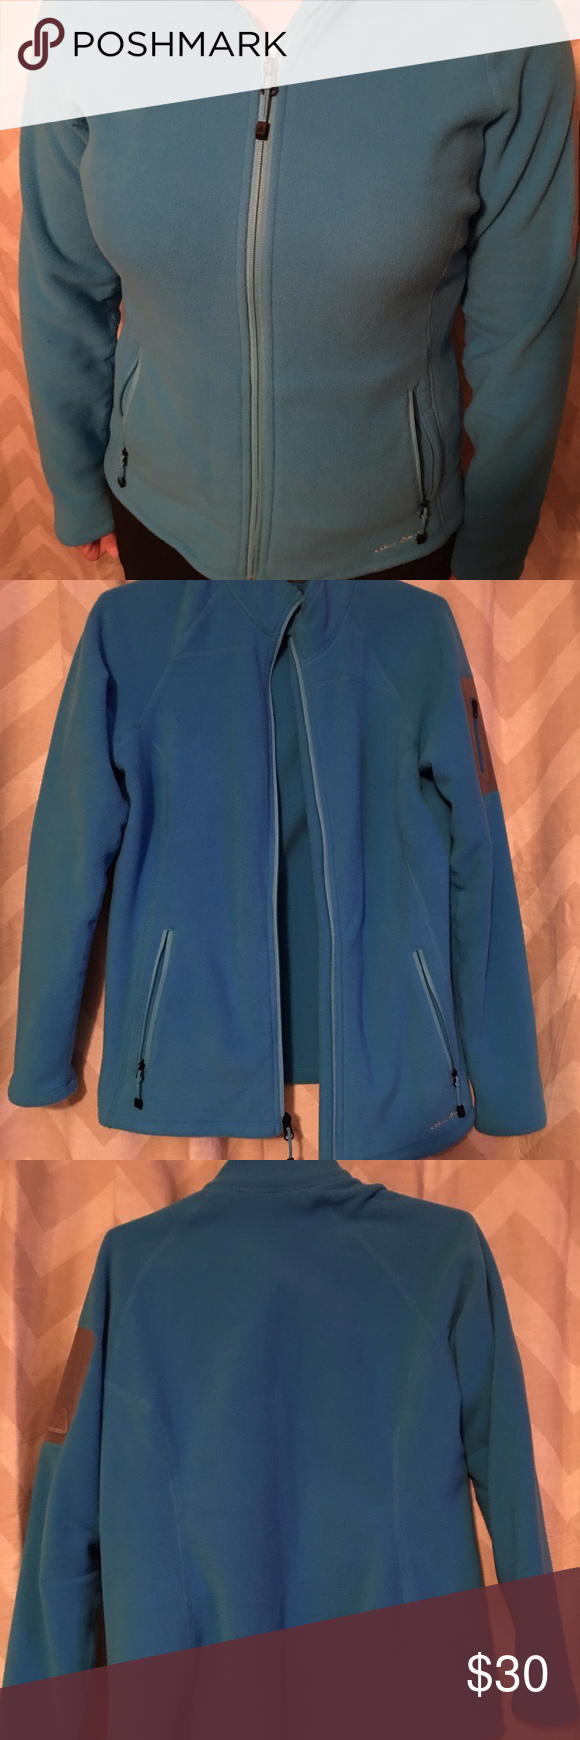 Eddie bauer zipup fleece jacket fleece zipup jacket with zip